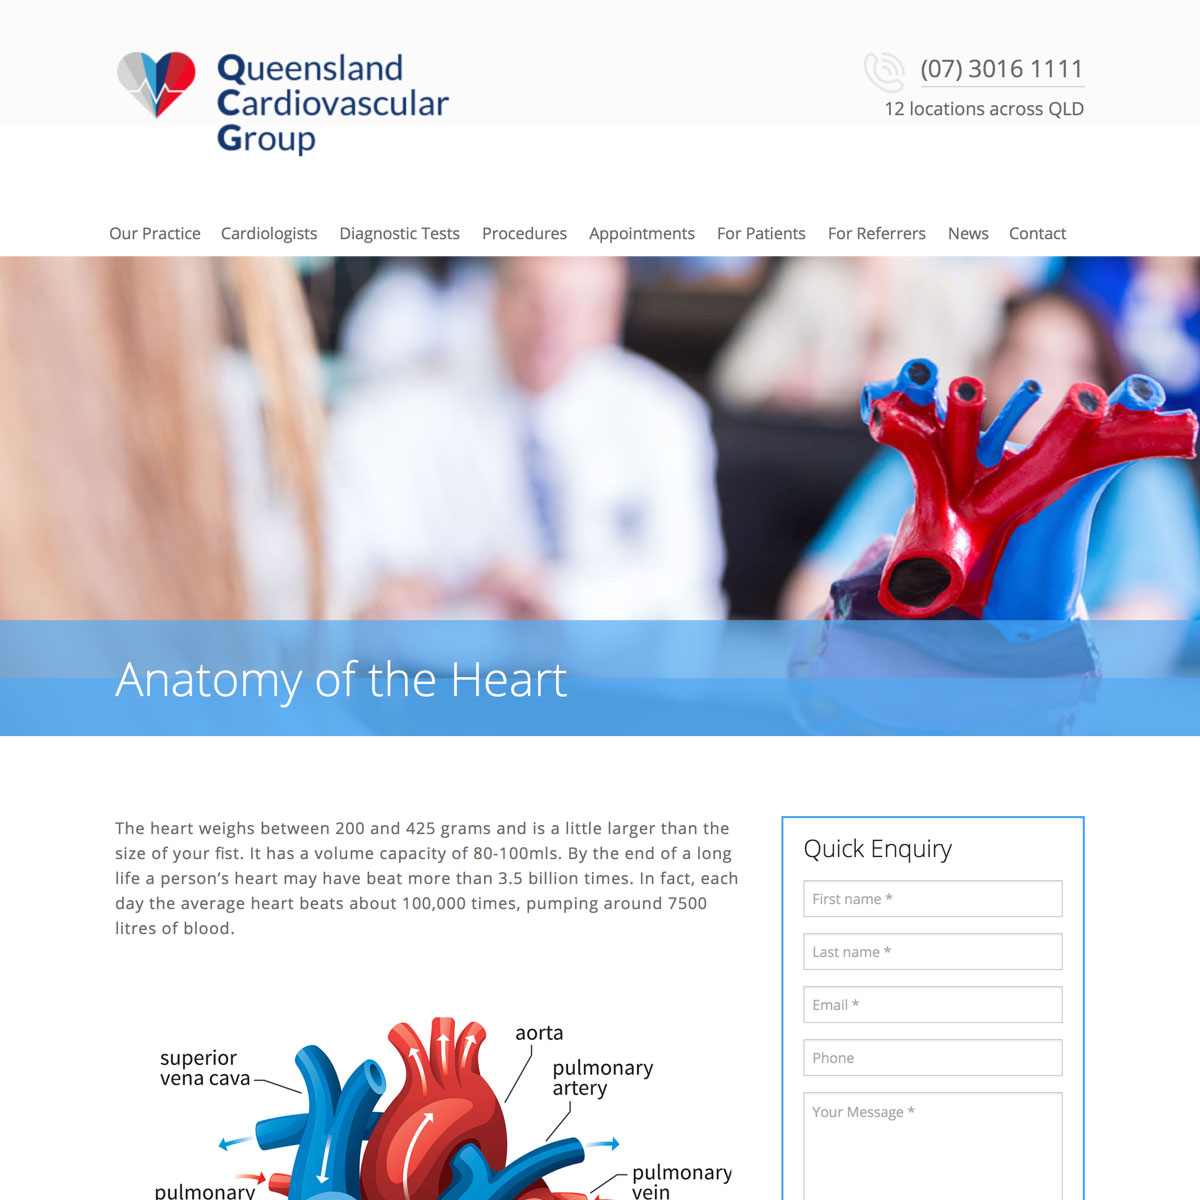 Queensland Cardiovascular Group - For Patients